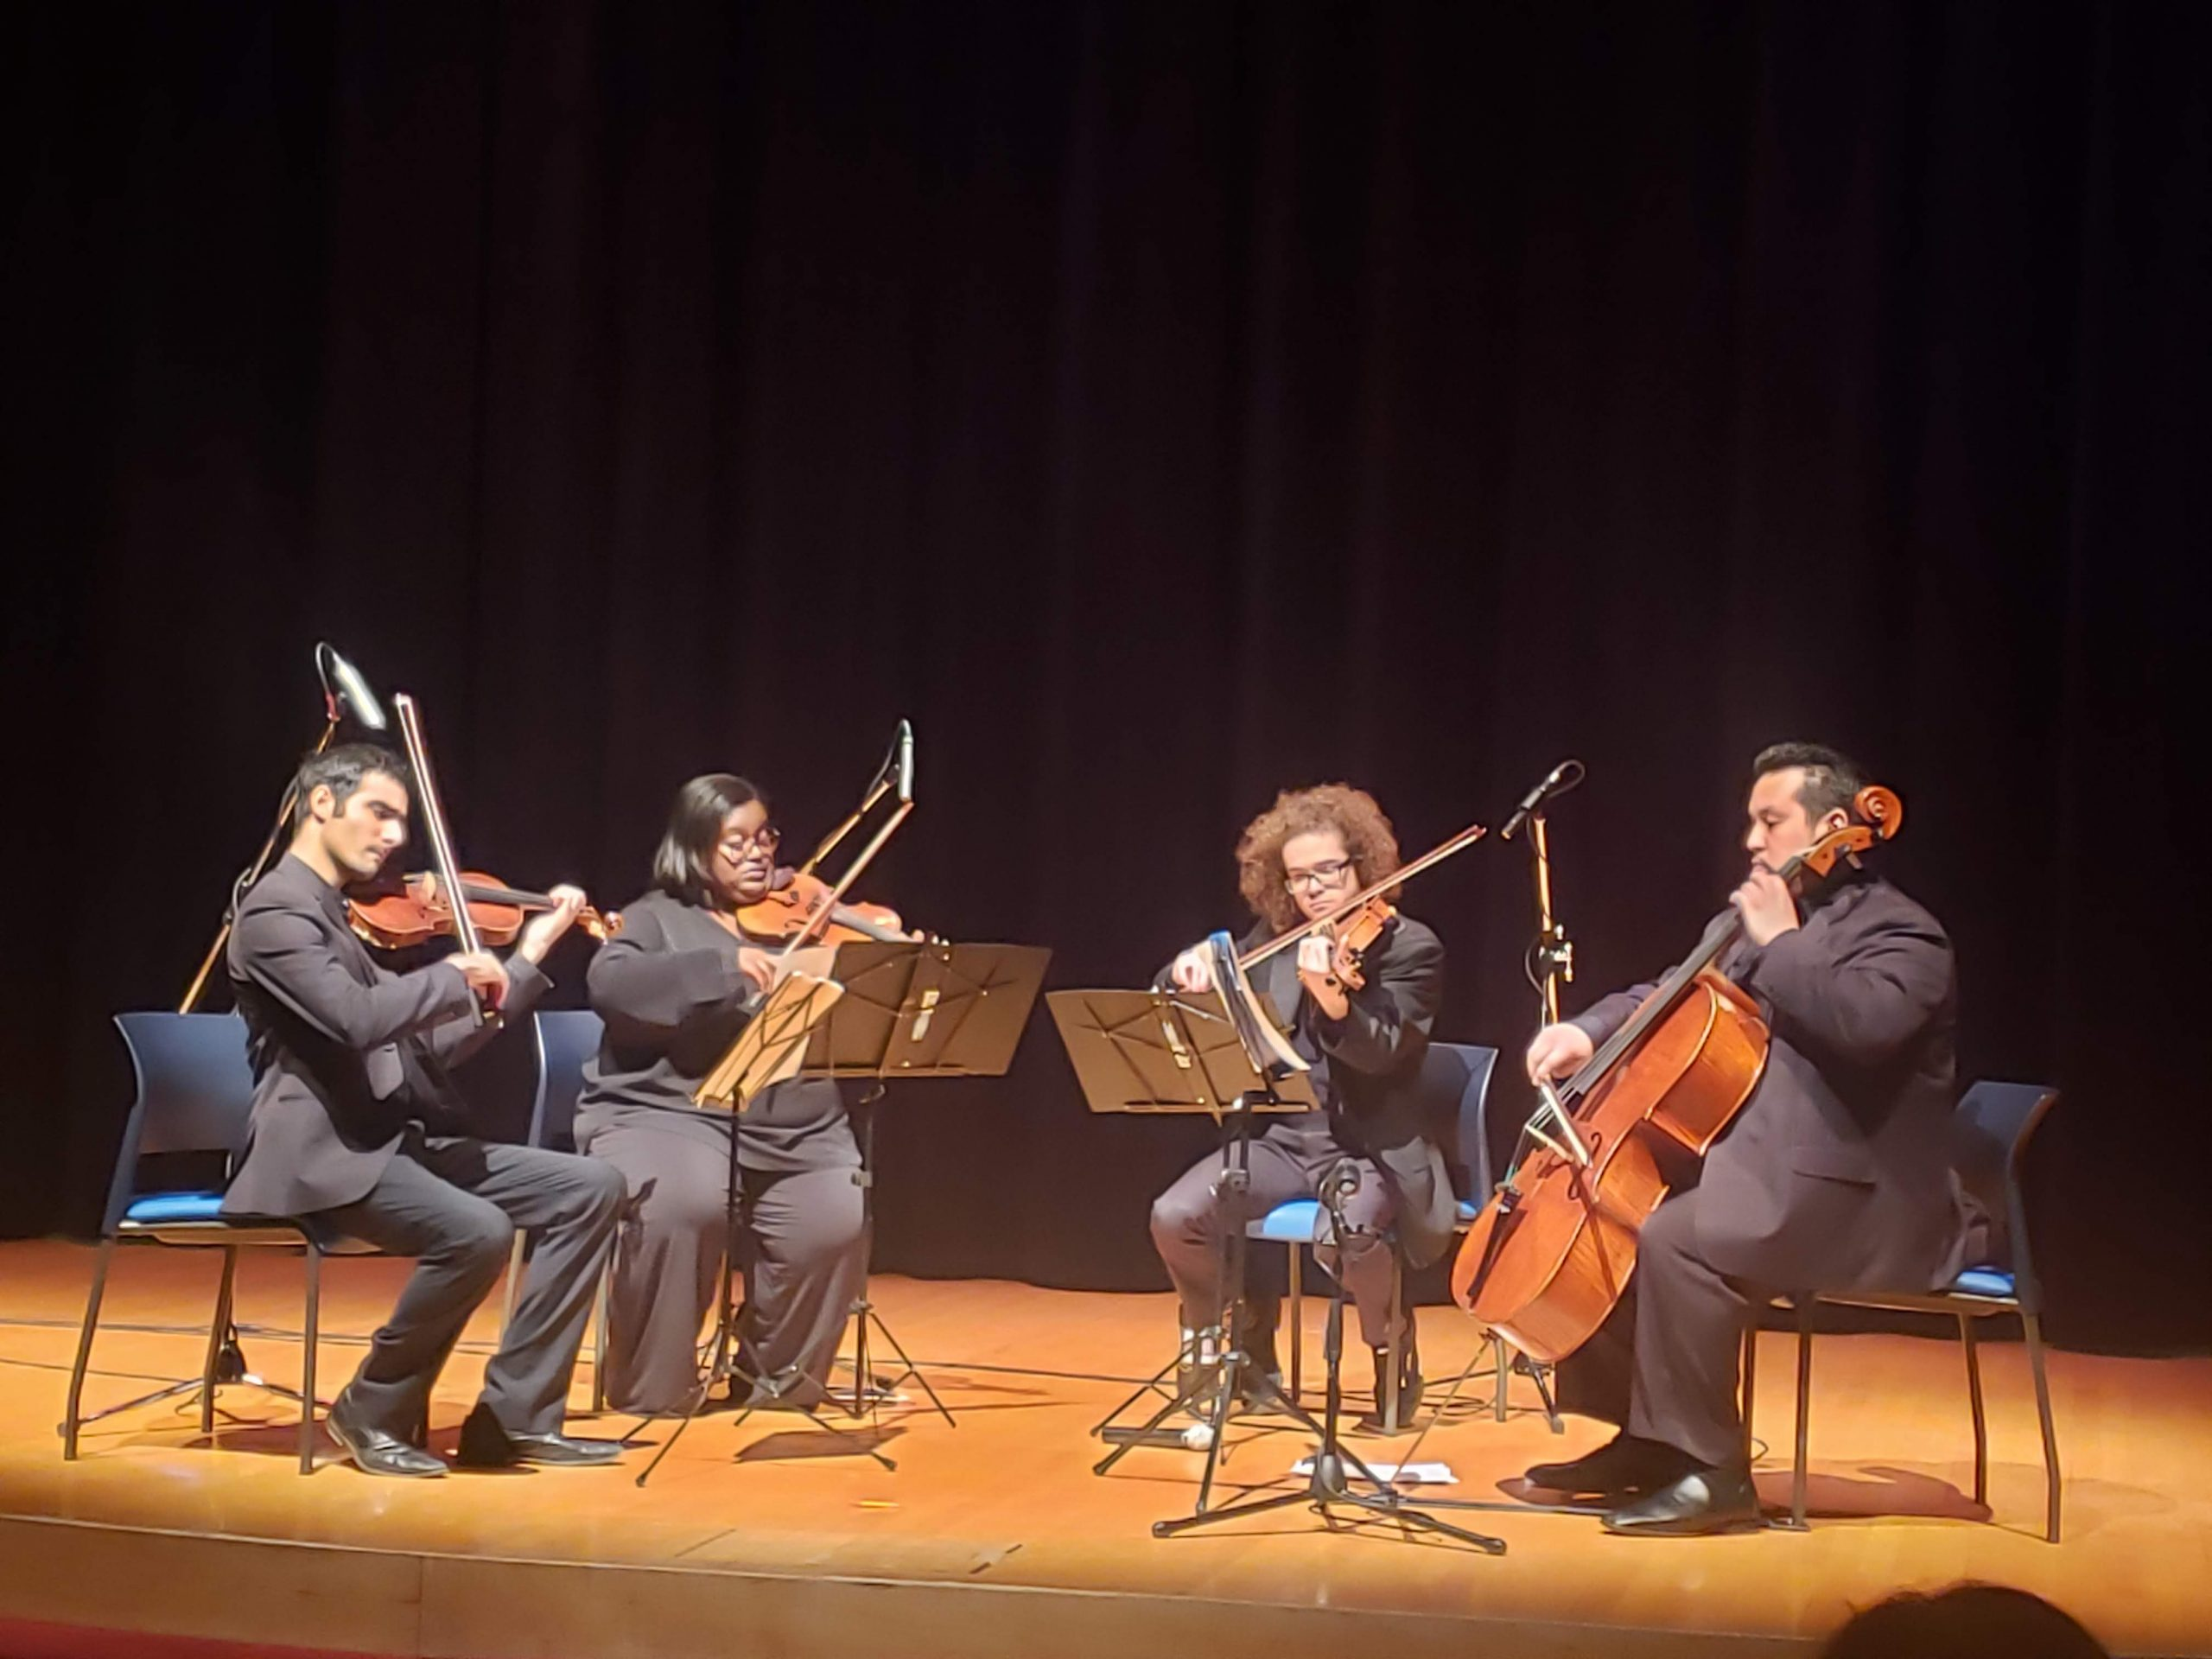 """On Thursday, Feb. 20, the <a href=""""http://www.chicagosinfonietta.org/education/project-inclusion/piof/"""">Chicago Sinfonietta</a>'s Project Inclusion performed at Fermilab in Ramsey Auditorium as part of Inclusion Matters 2020. """"Project Inclusion started in 2008 to provide promising, diverse musicians a fellowship for one to two years. The goal is to identify, train, mentor and ready orchestra musicians beginning their pursuit of a professional career — musicians from diverse backgrounds including, but not limited to, diverse racial, ethnic, socioeconomic and geographic backgrounds, that are traditionally underrepresented in orchestras."""" From left: Fahad Awan on violin; Caitlin Edwards on violin; Seth Pae on viola; Victor Sotelo on cello. people, diversity, inclusion, arts Photo: Justine Dunn"""